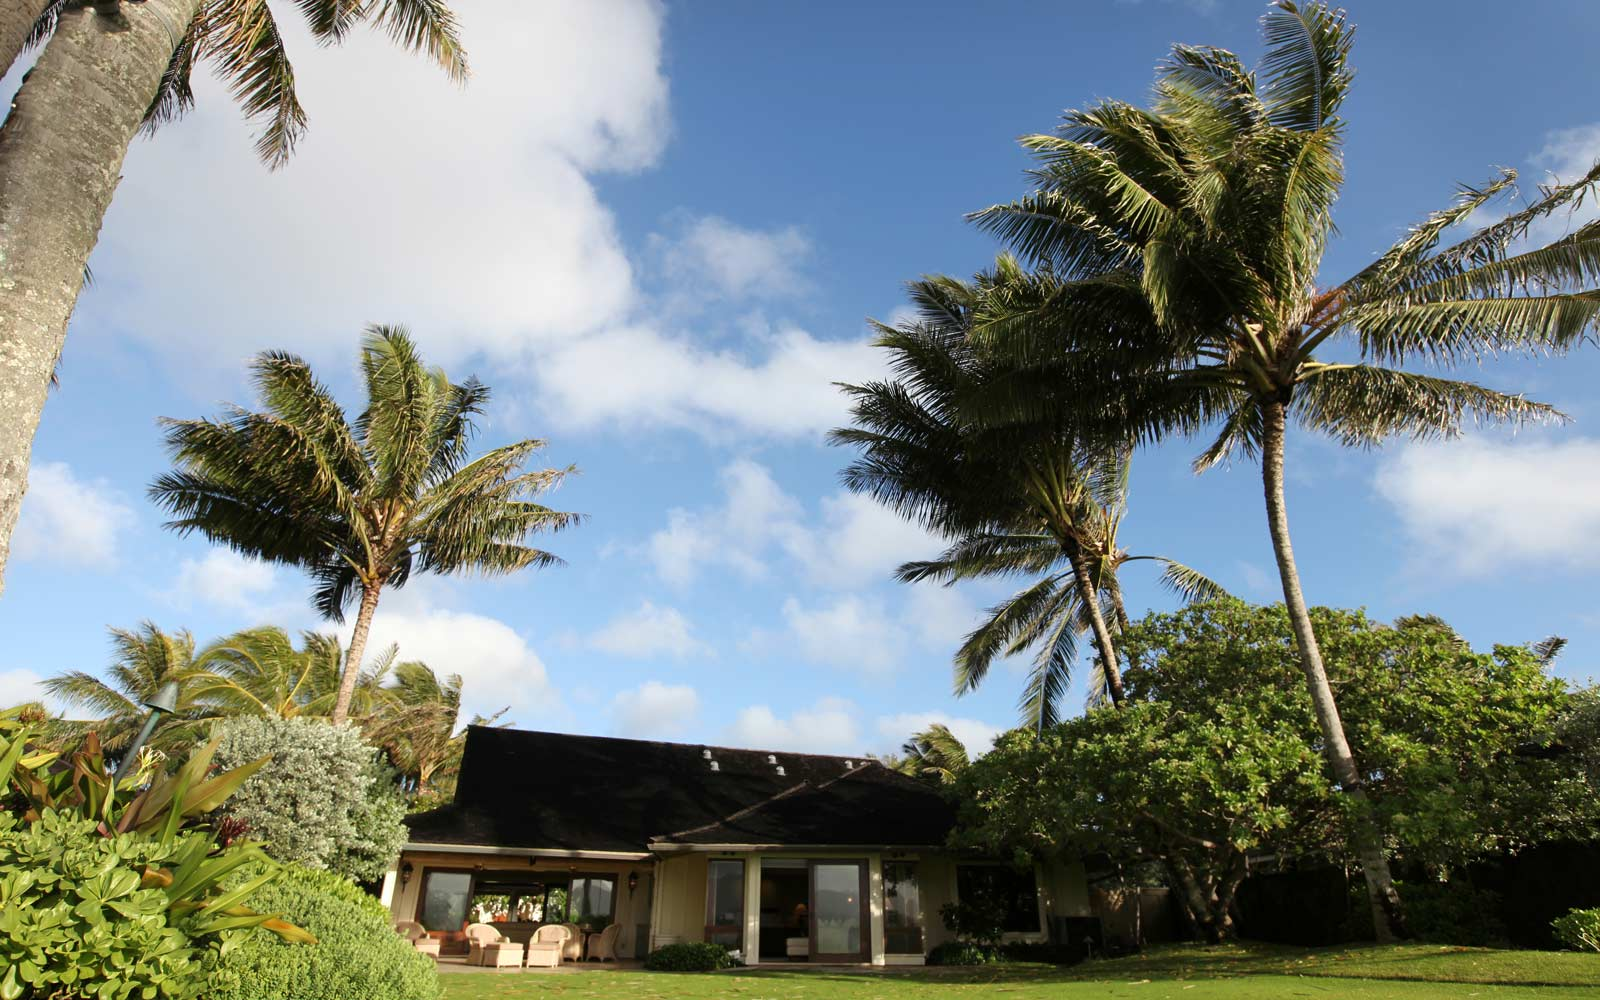 Obama's Hawaii home